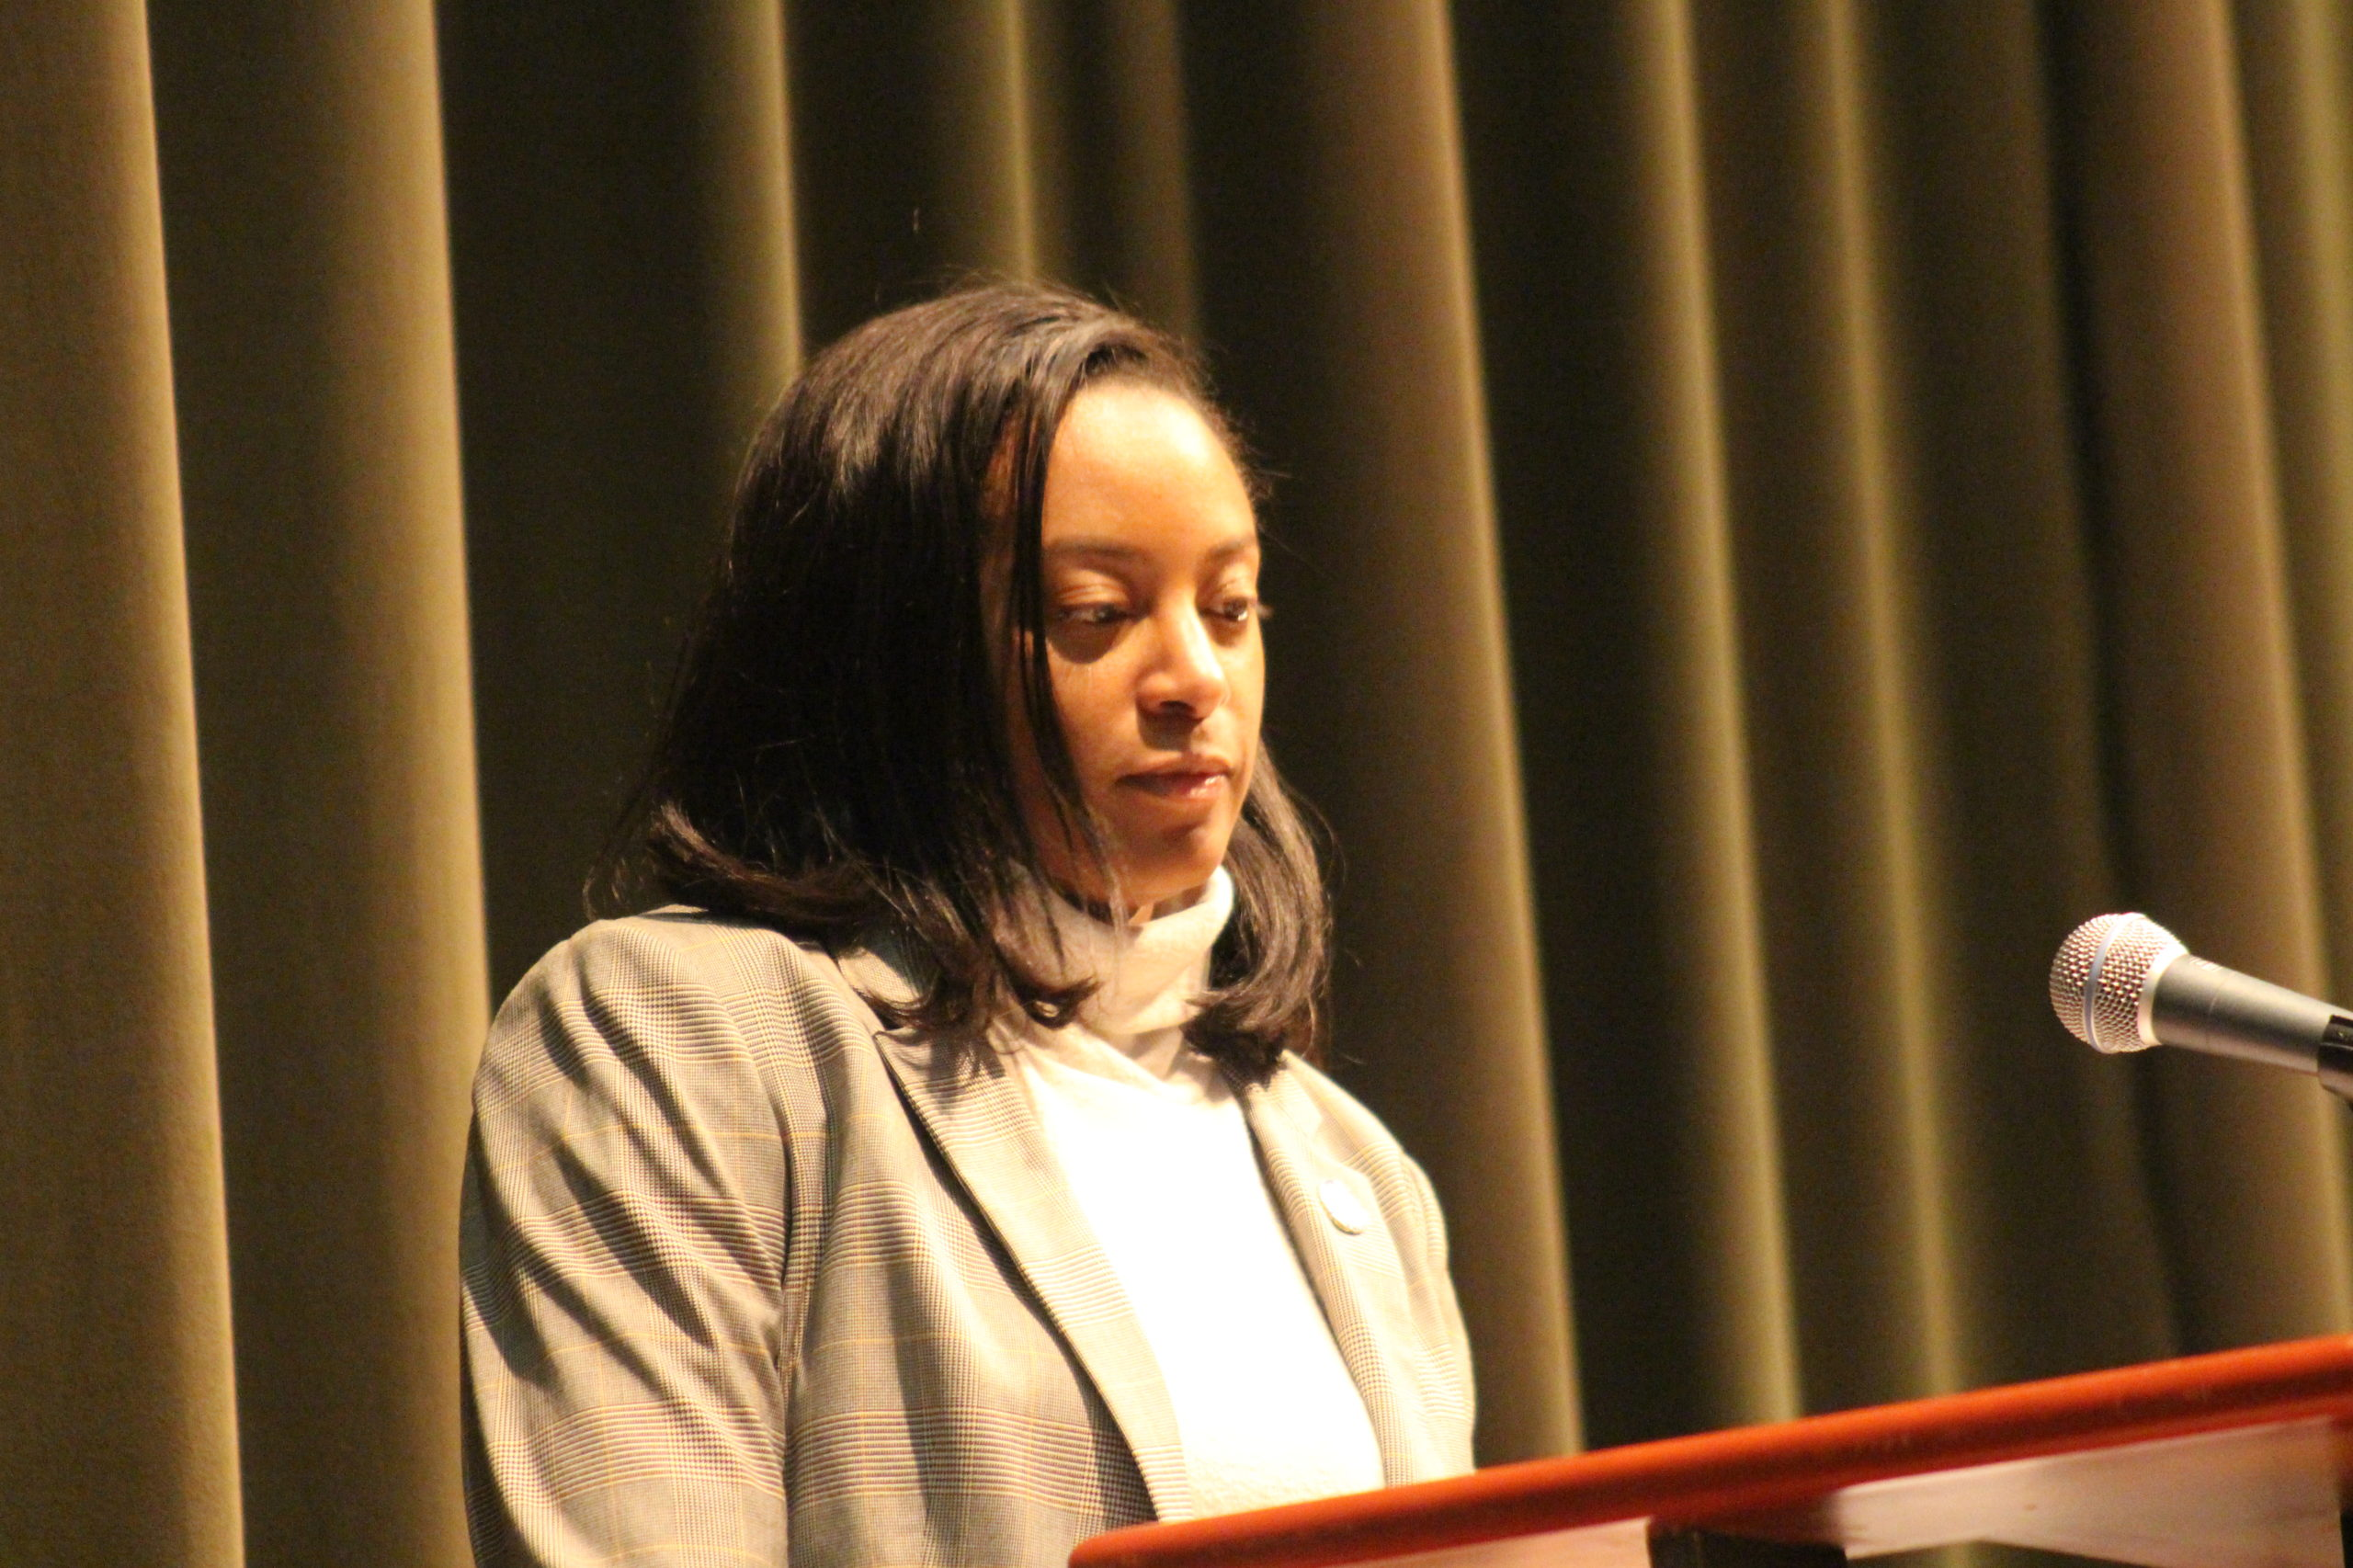 Delegate Jennifer Carroll Foy:  Still more of Dr. King's work to be done